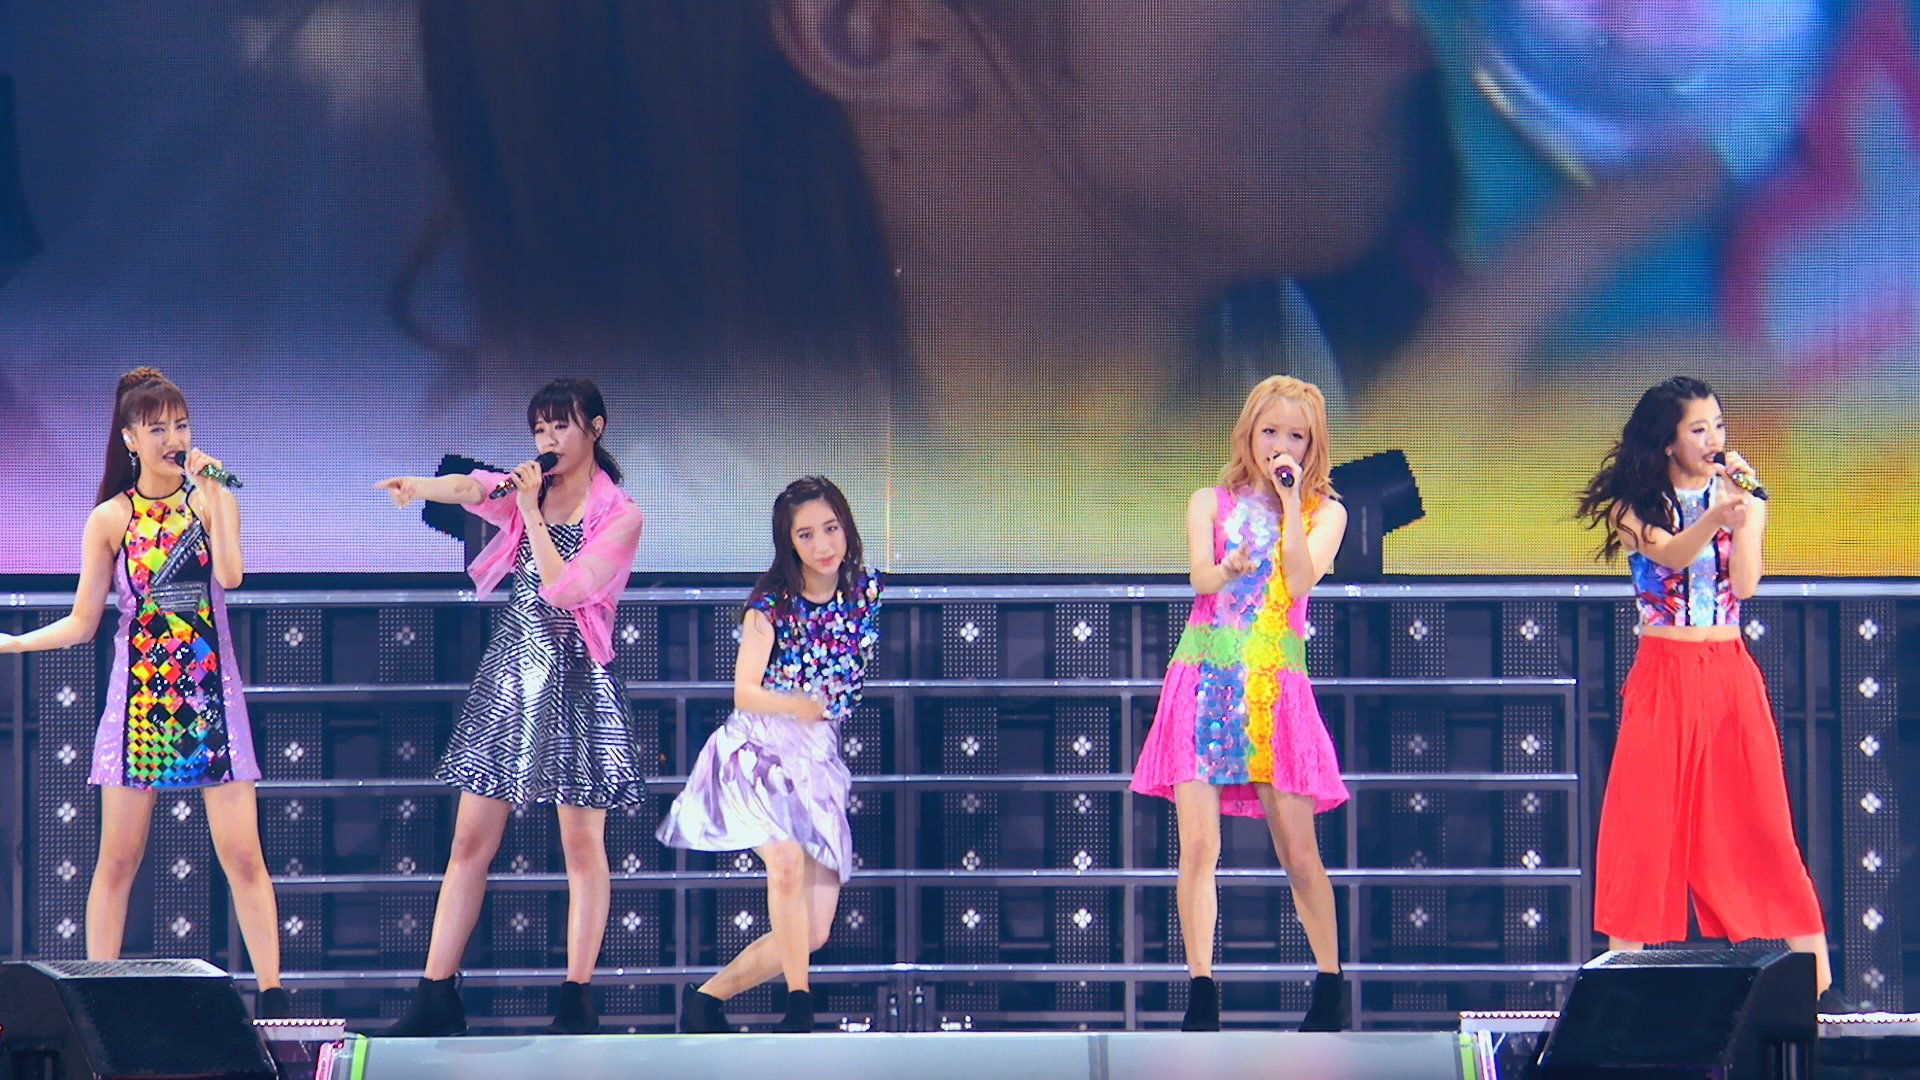 「E-girls LIVE 2017 〜E.G.EVOLUTION〜 (Digest)」